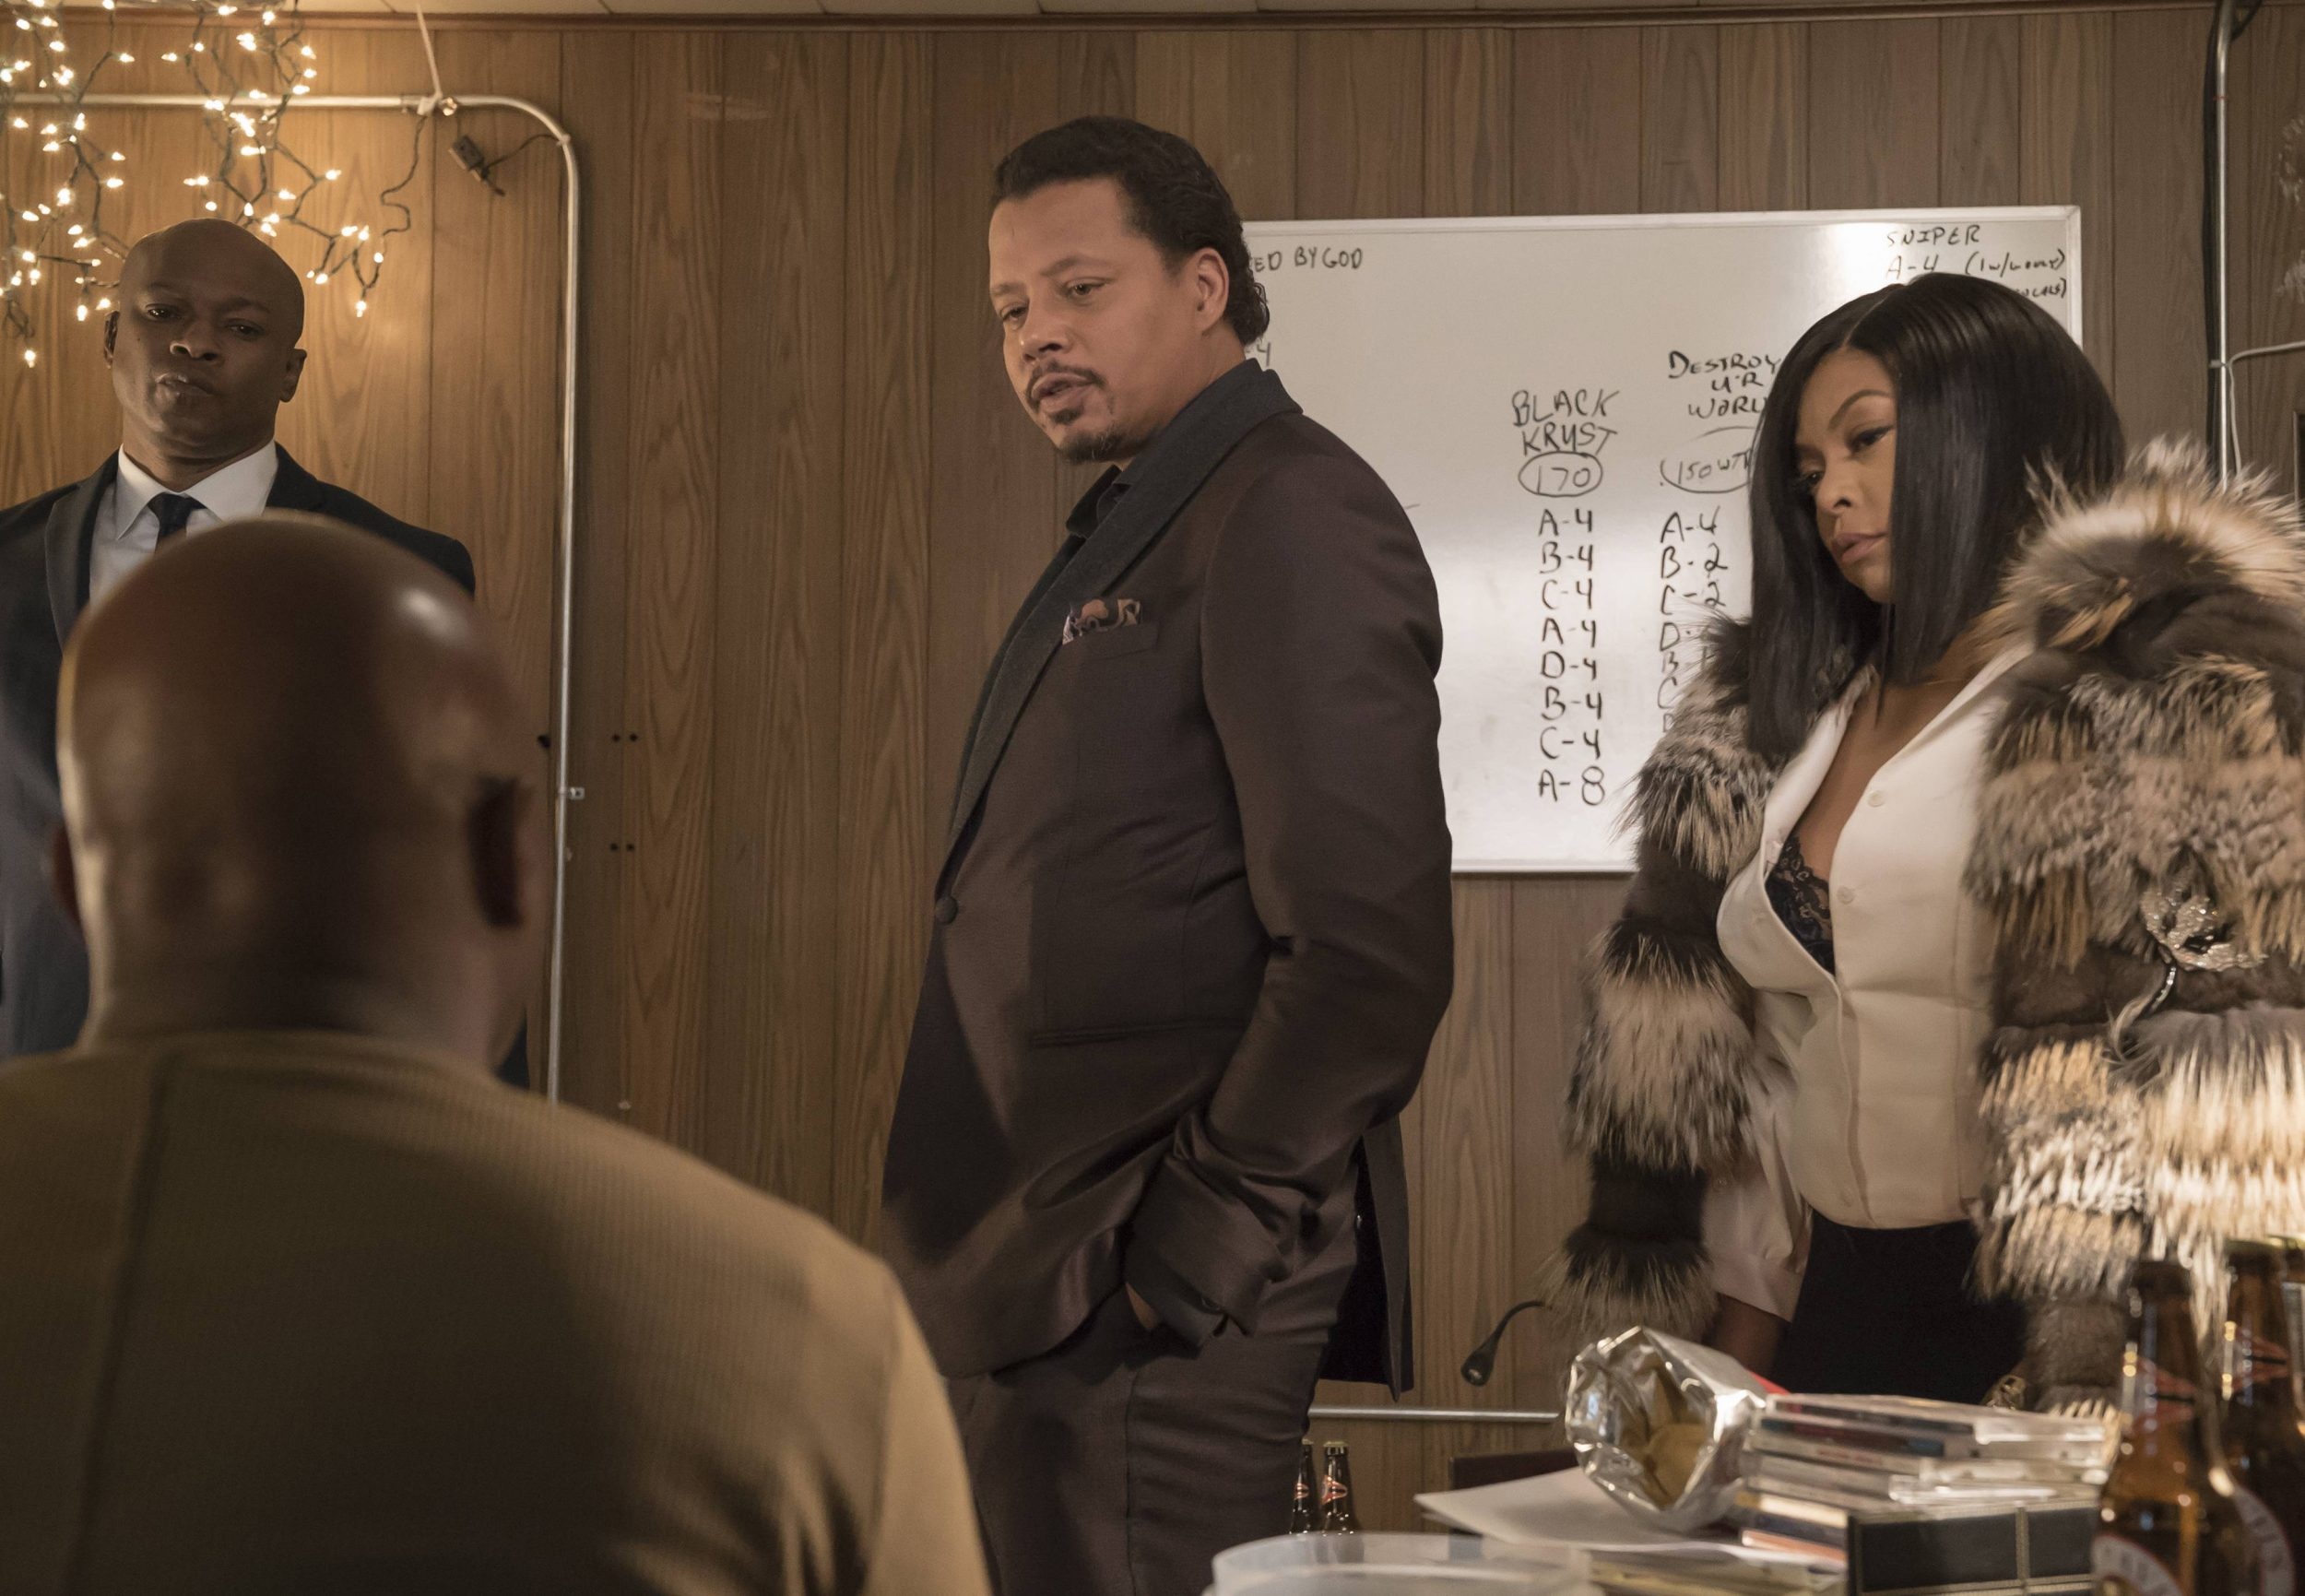 """EMPIRE: Pictured L-R: Web, Terrence Howard and Taraji P. Henson in the """"Sound & Fury"""" spring premiere episode of EMPIRE airing Wednesday, March 22 (9:00-10:00 PM ET/PT) on FOX. ©2017 Fox Broadcasting Co. CR: Chuck Hodes/FOX"""